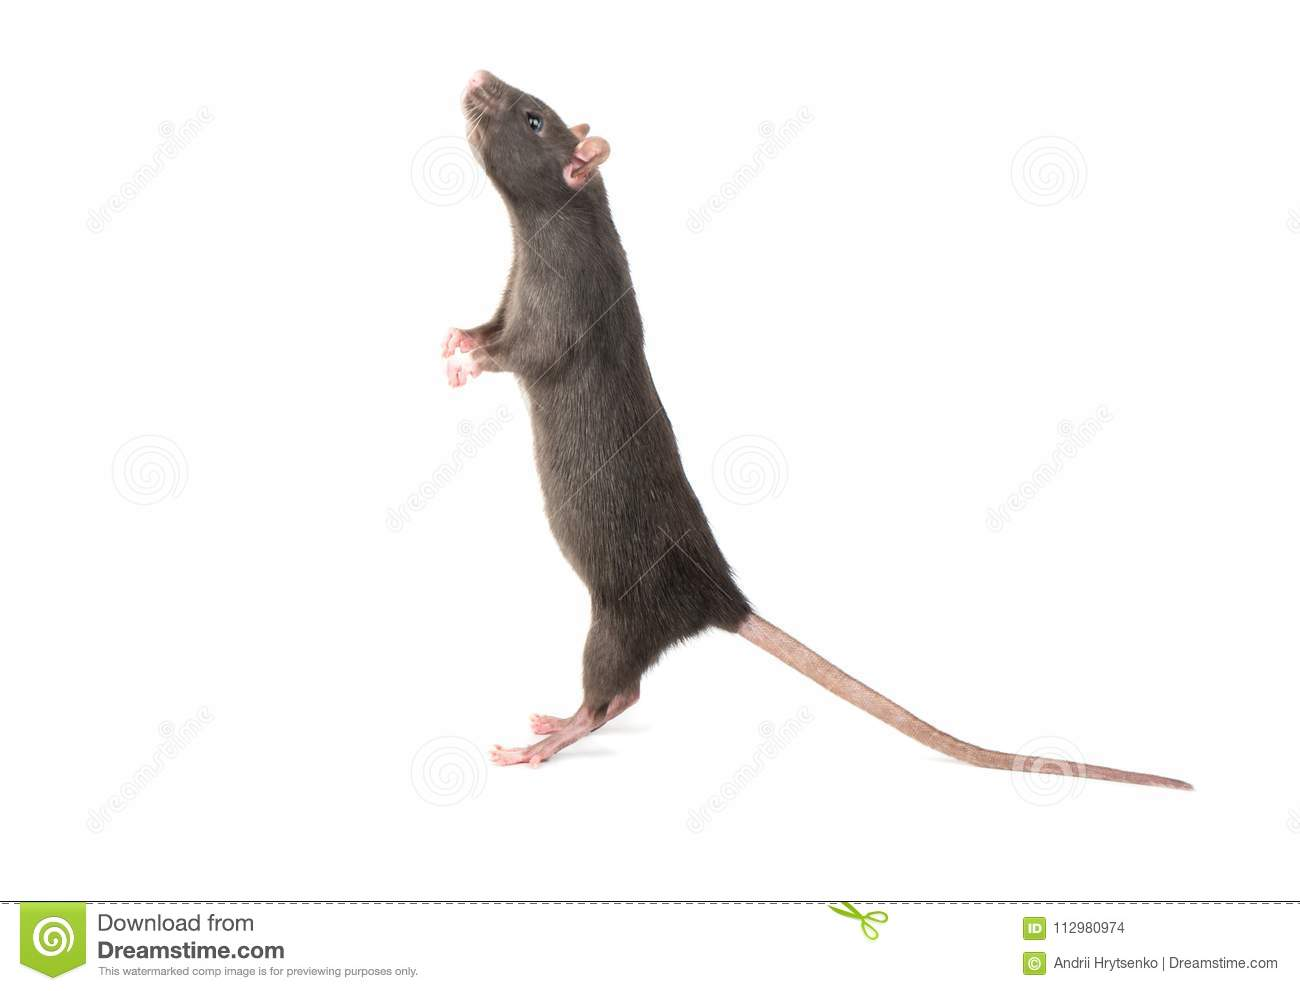 Rat stands on hind legs